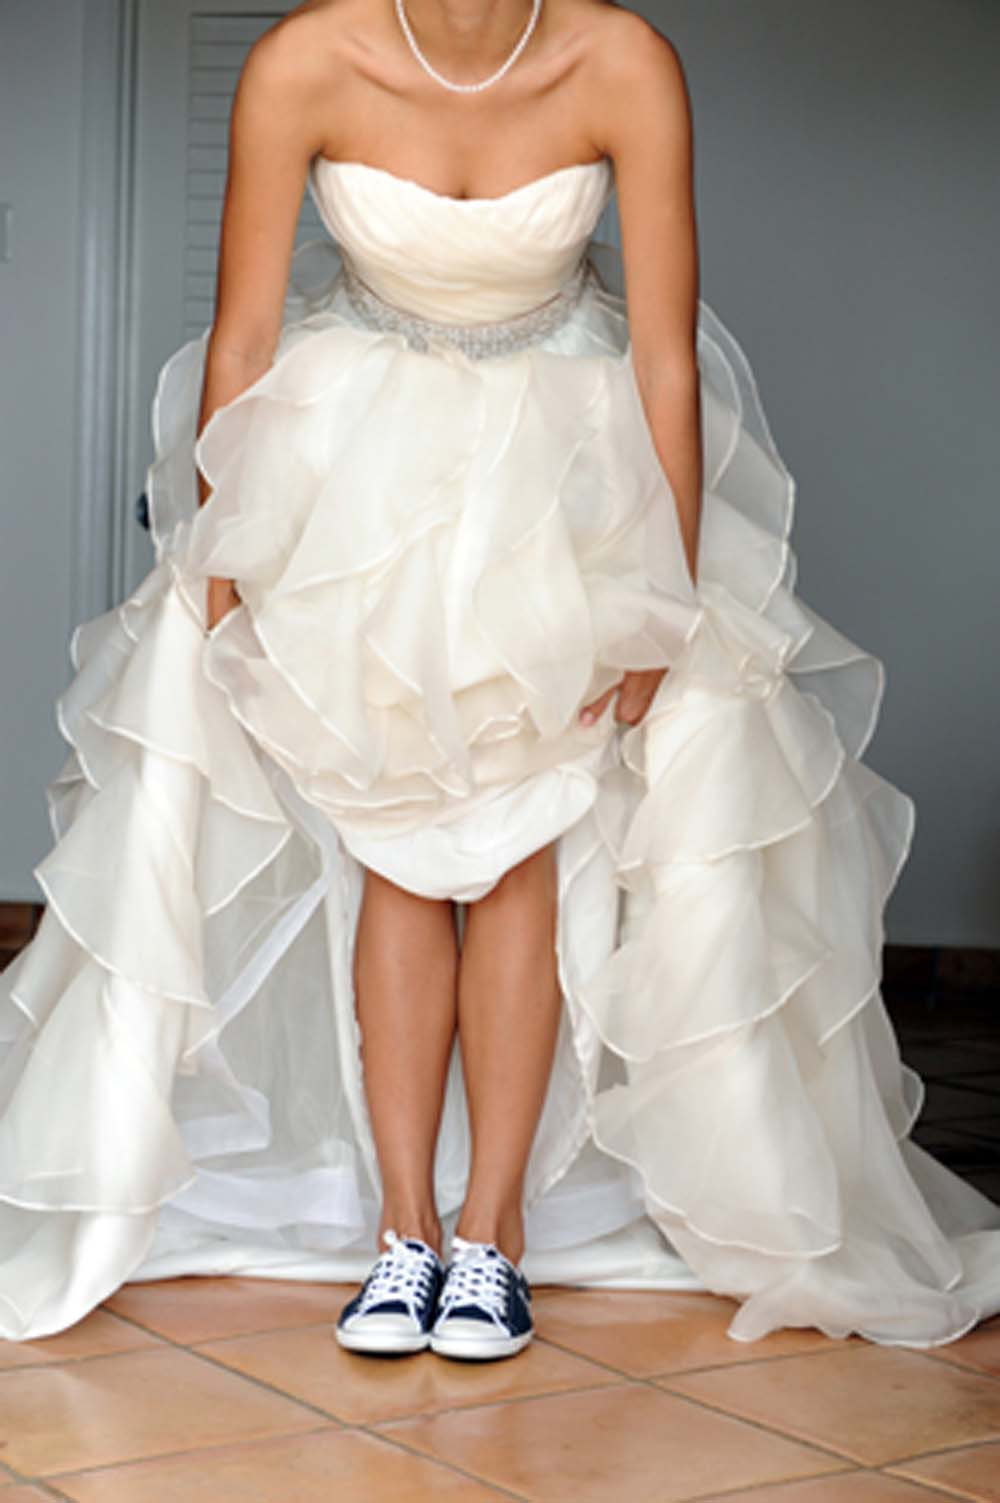 Proof that sneakers can complete a wedding ensemble weddingbells ombrellifo Images